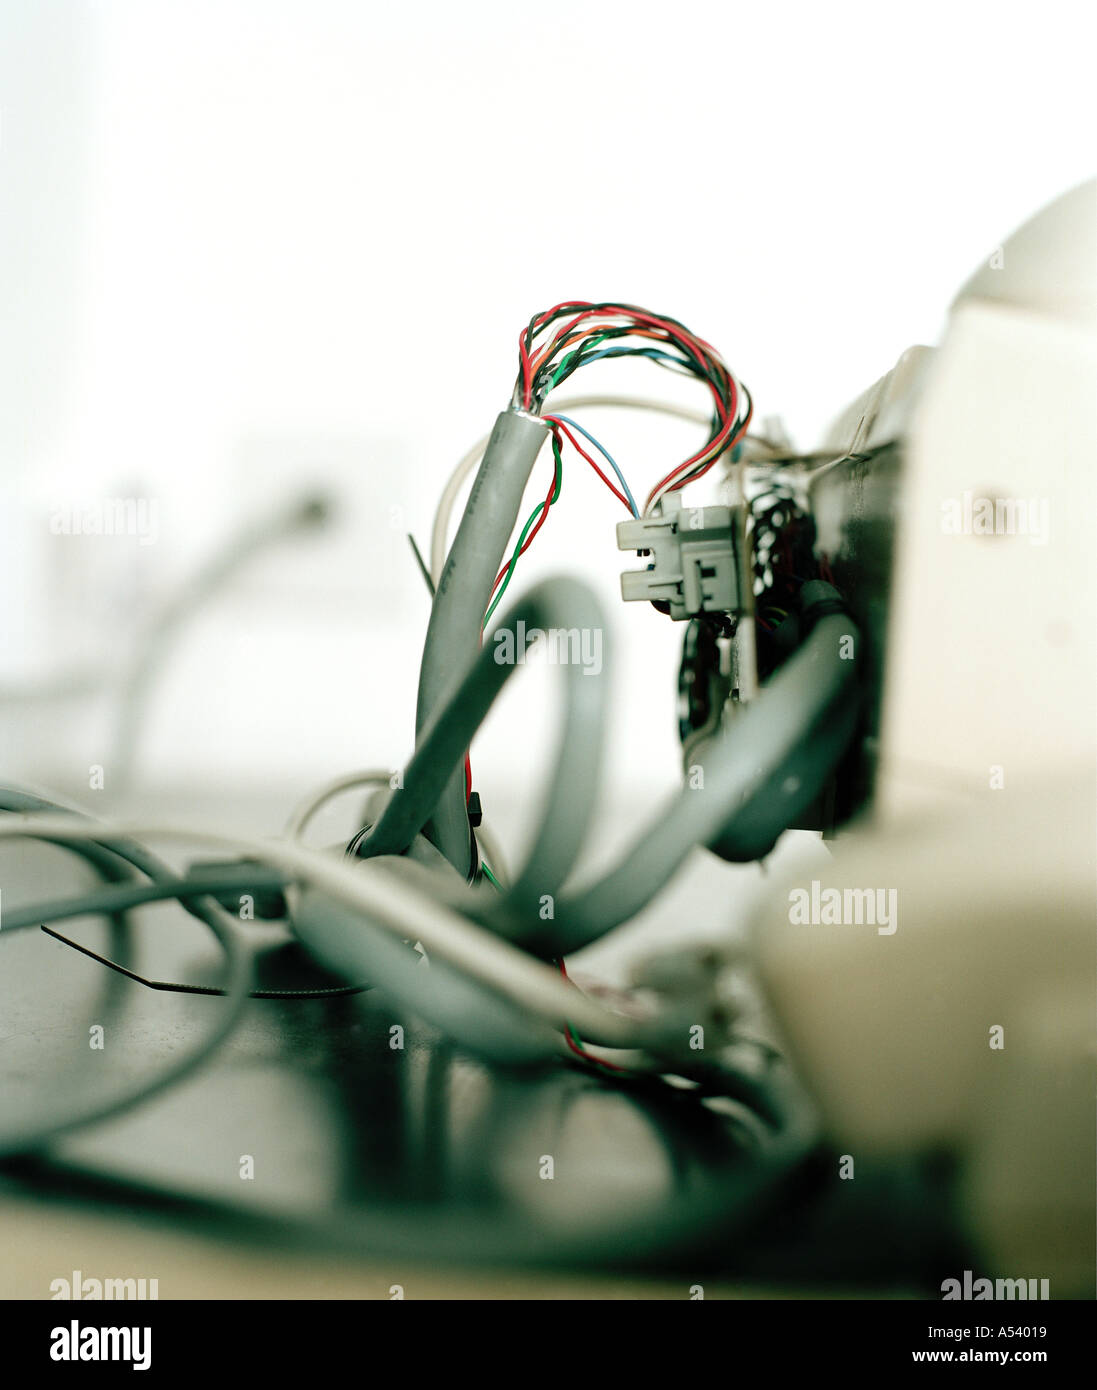 electric wires - Stock Image